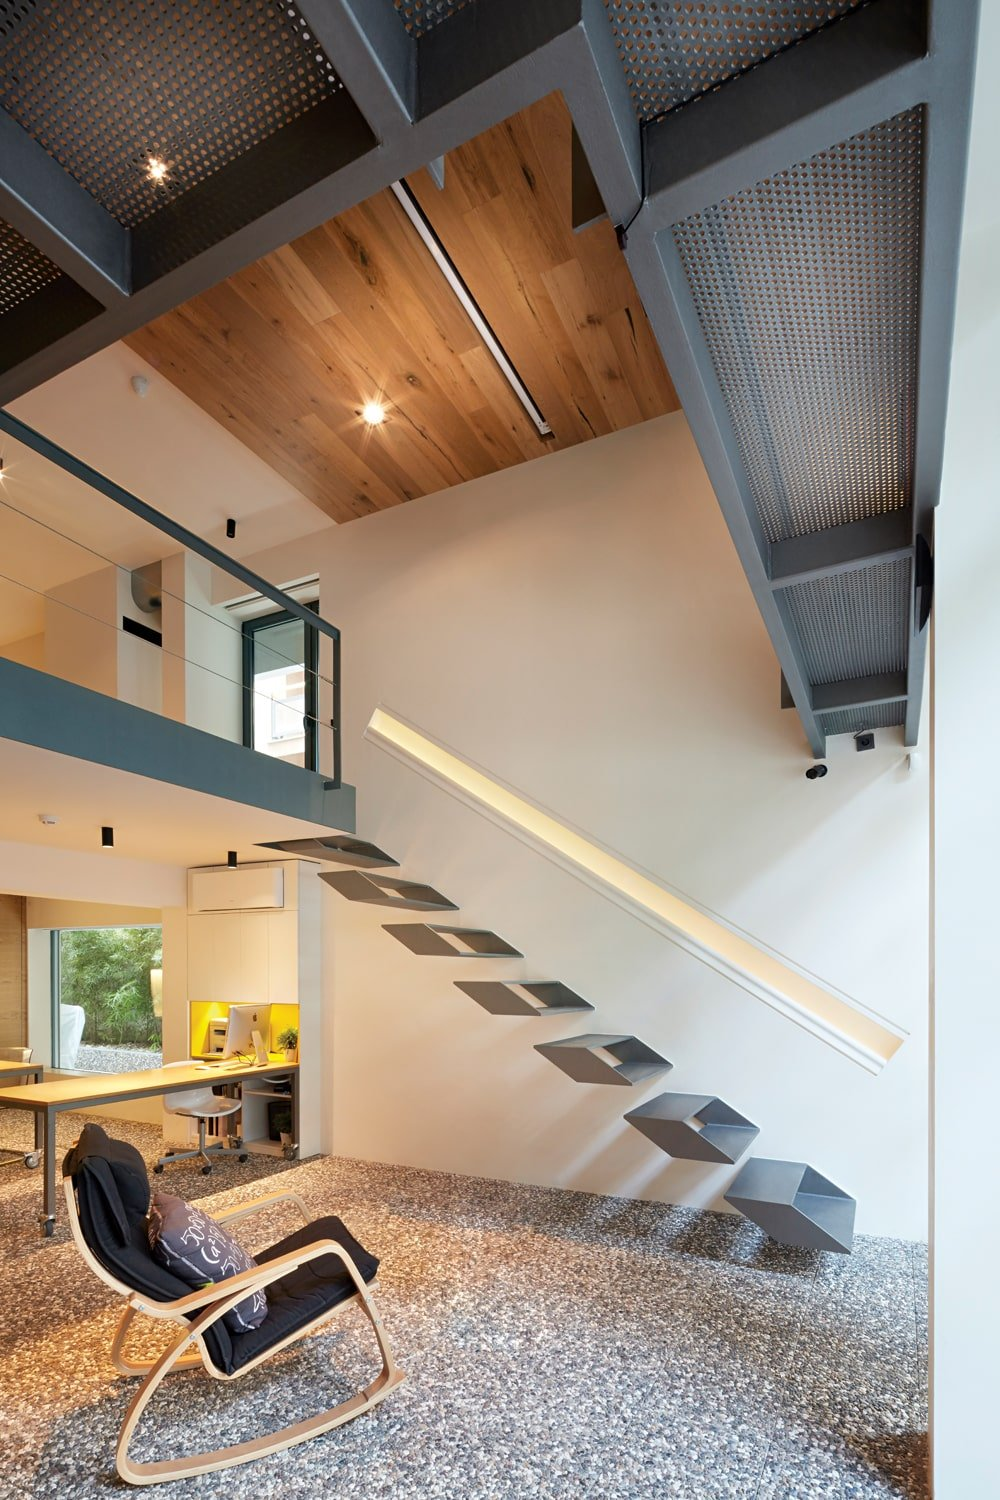 This lovely foyer has a tall wooden ceiling with recessed lights that complement the beige walls contrasted by the gray structures of the second level.